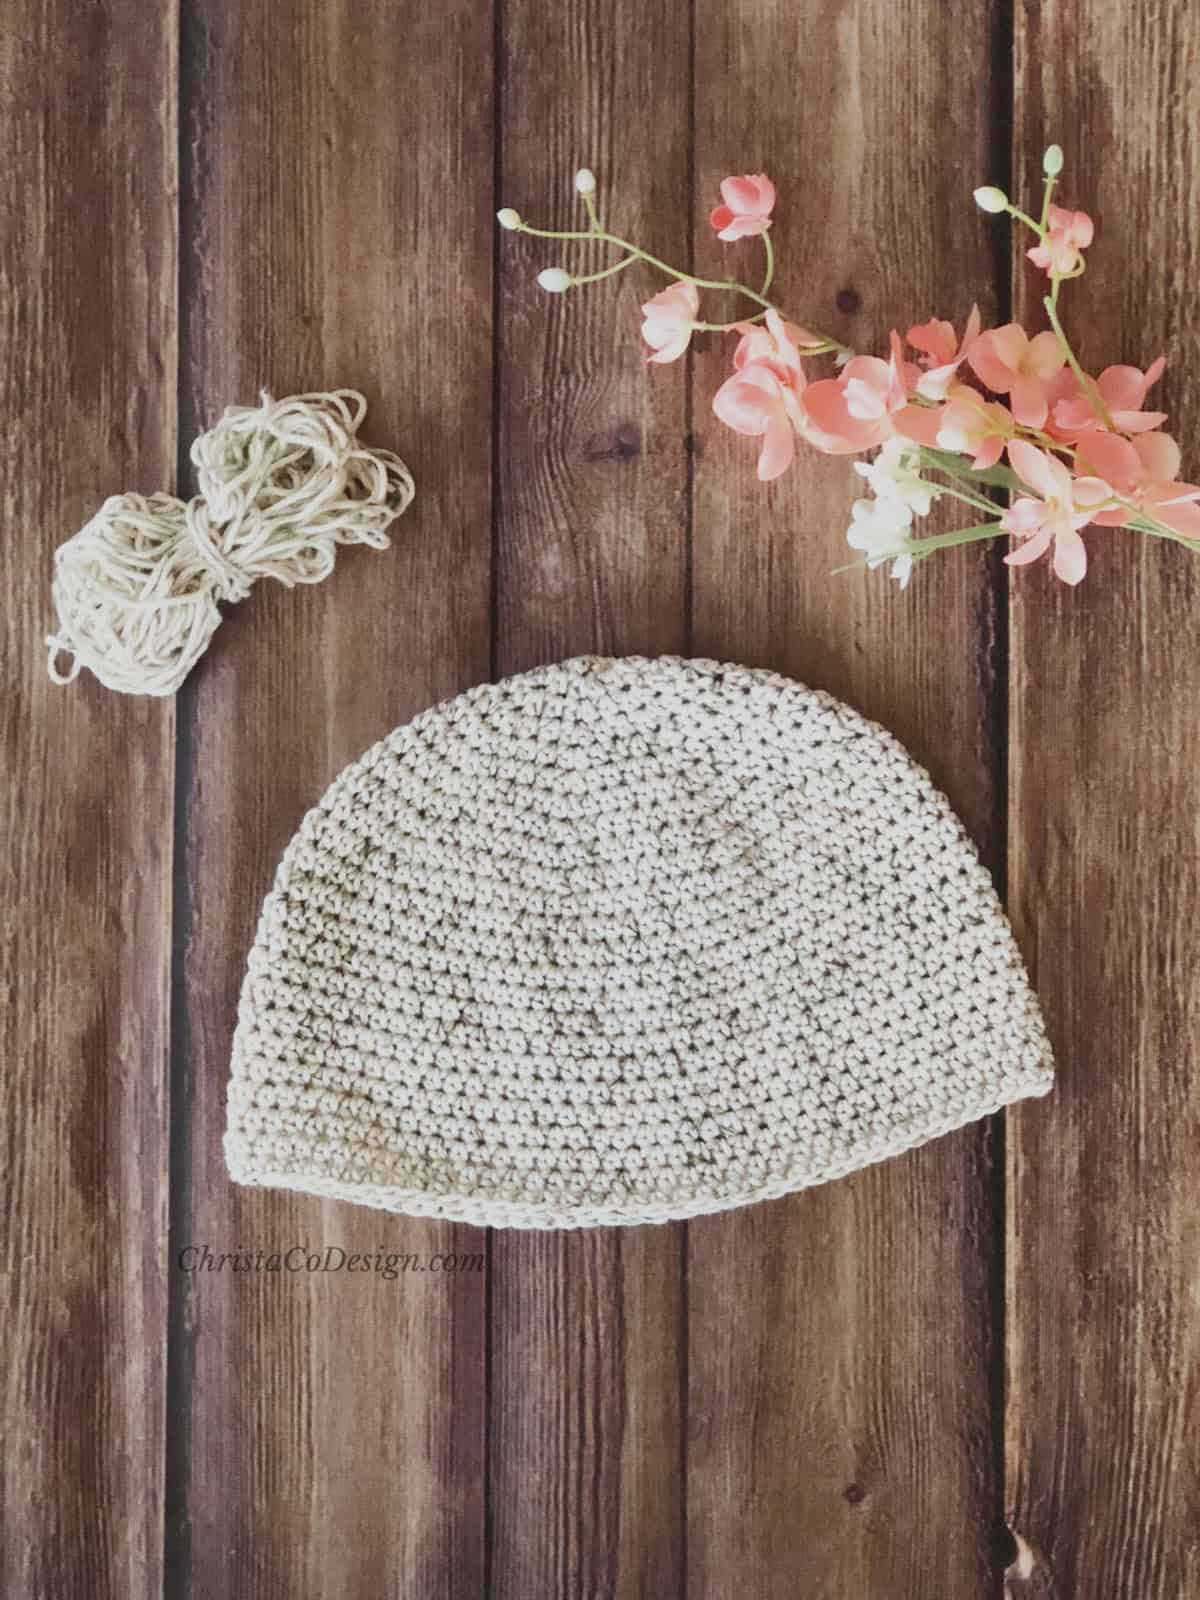 picture of soft cotton chemo cap and pink flowers flat